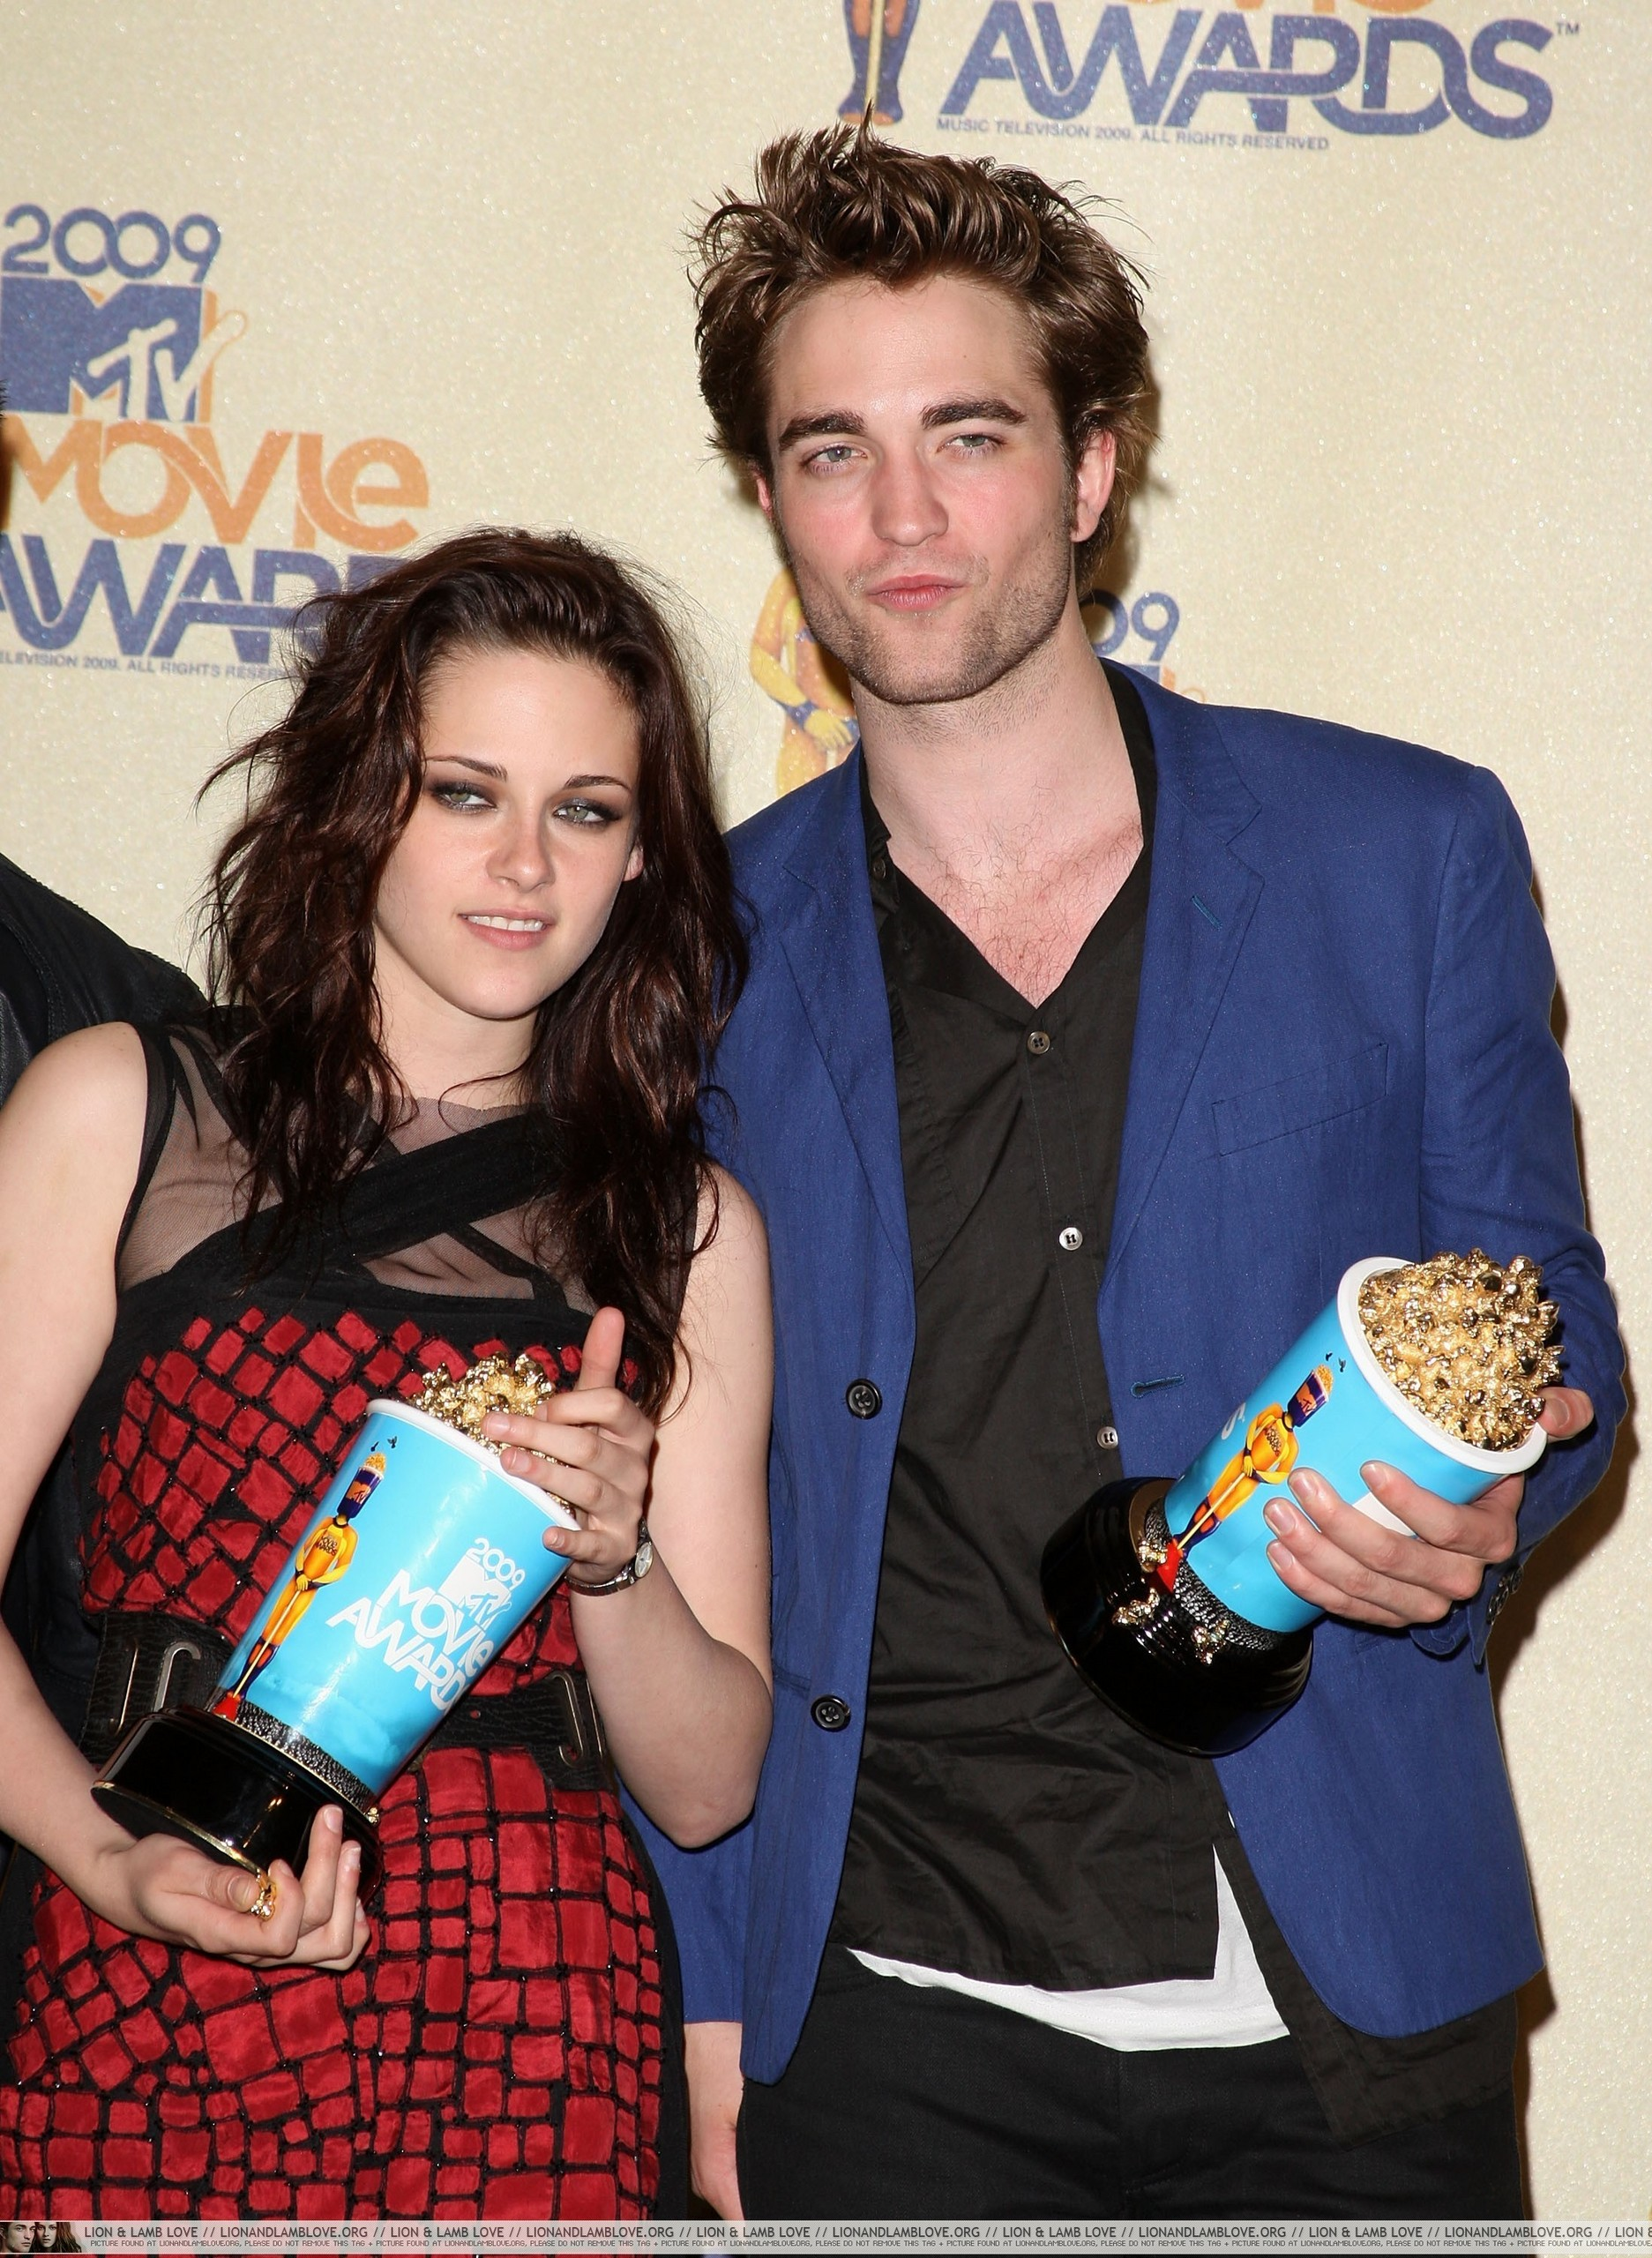 http://images2.fanpop.com/images/photos/6400000/2009-MTV-Movie-Awards-Press-Room-twilight-series-6495747-1873-2560.jpg